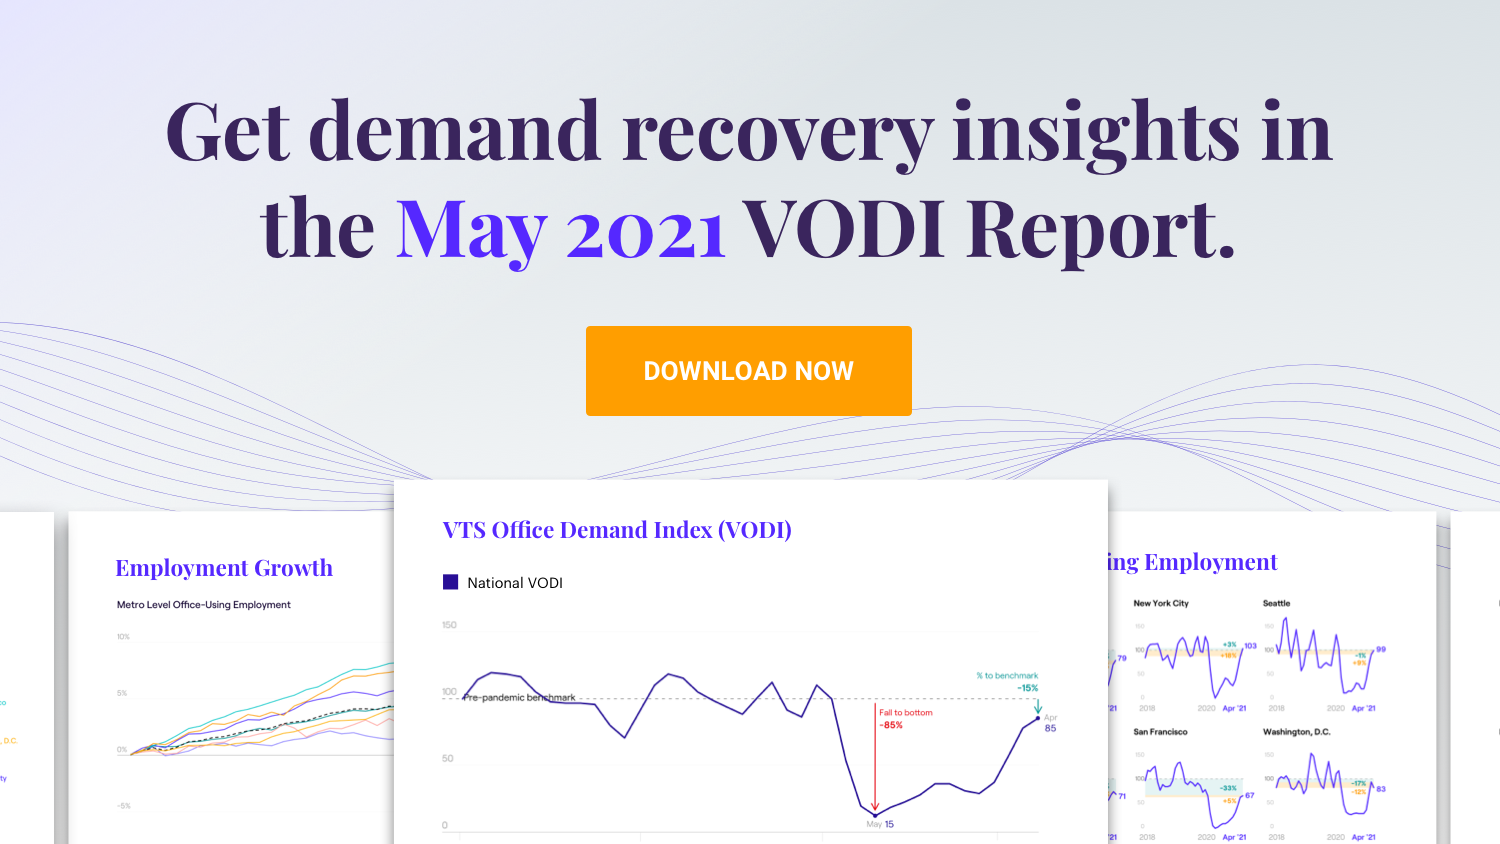 05.26.21 Demand for Office Space Continues with Steady Upward Momentum Nationally